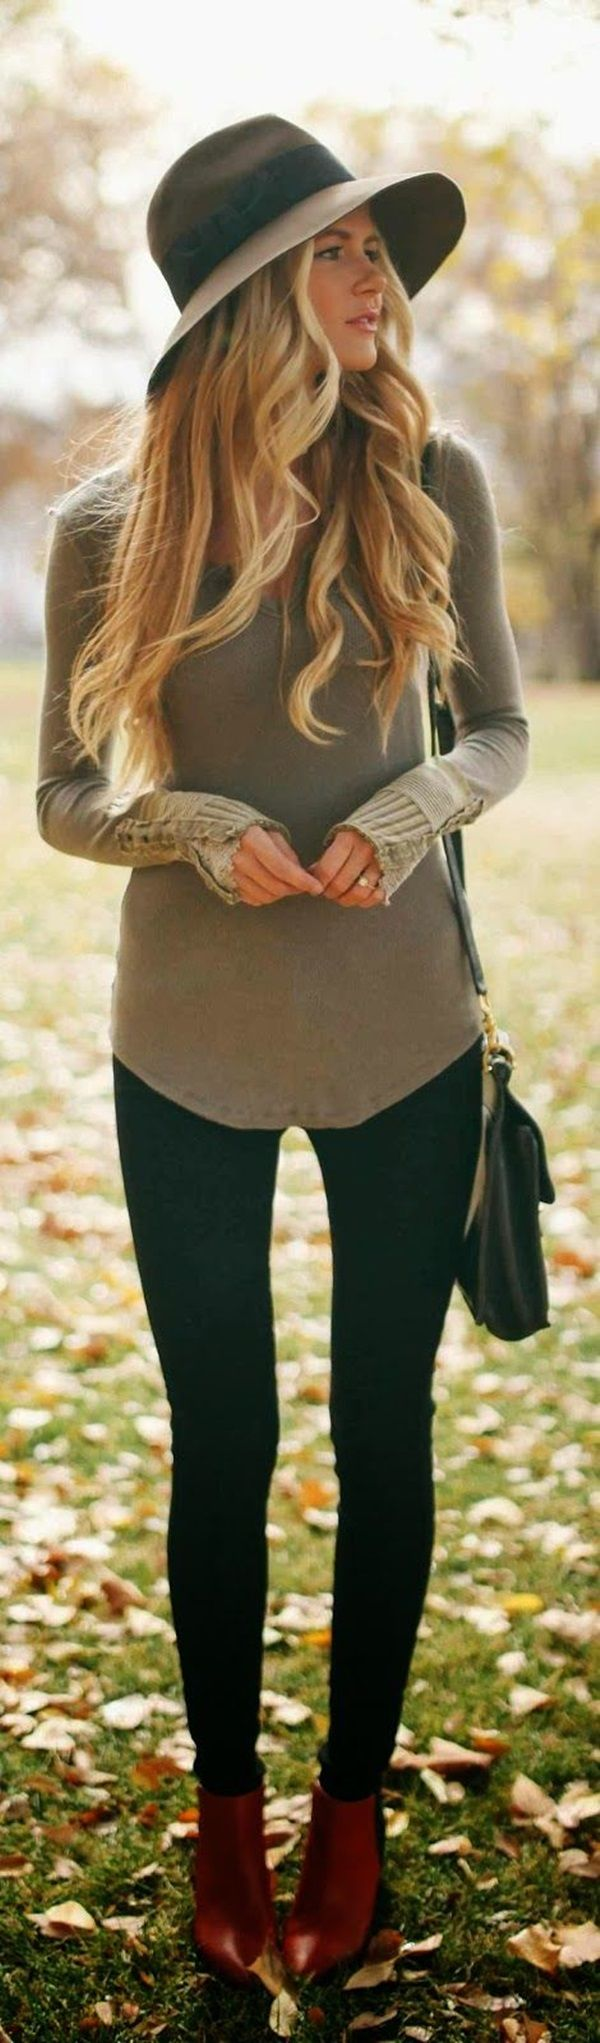 for fall... I am a big fan of black skinnies with long neutral colored sweaters and brown booties or boots.